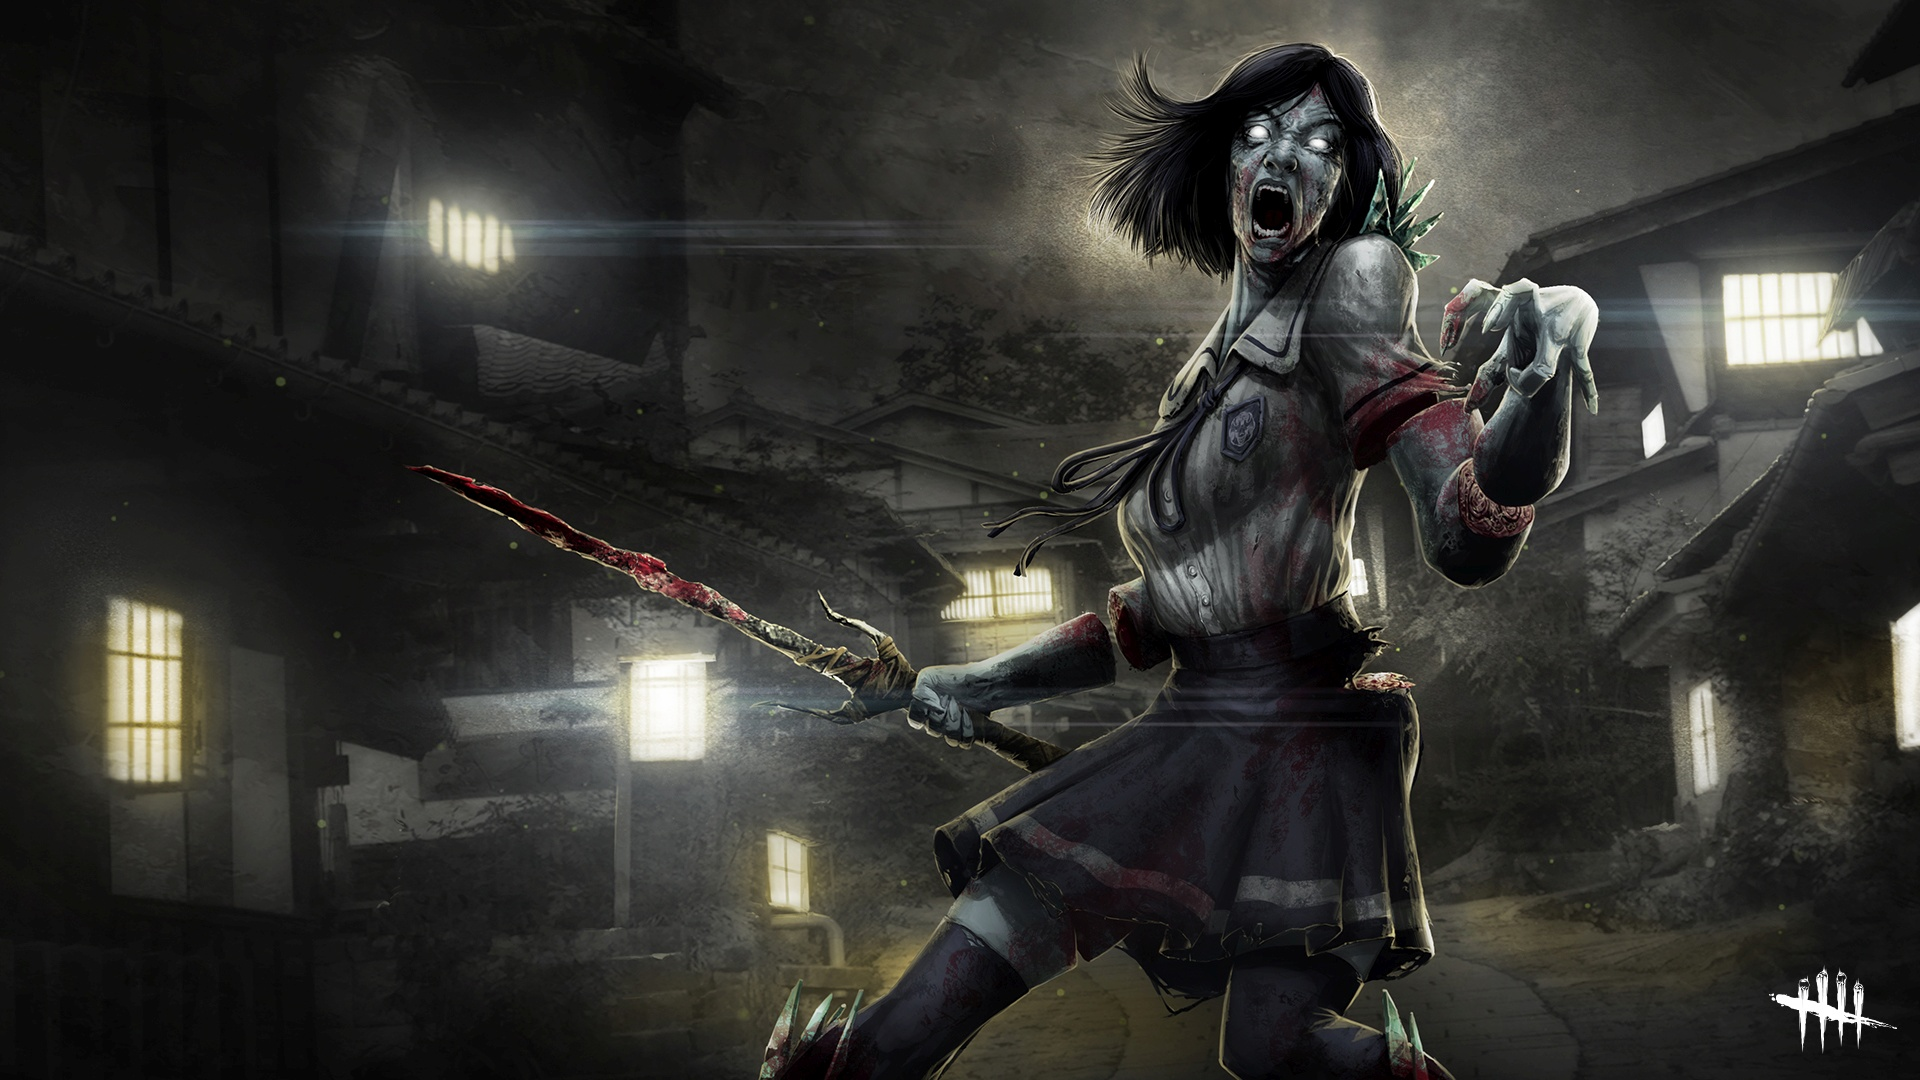 Dead By Daylight free background